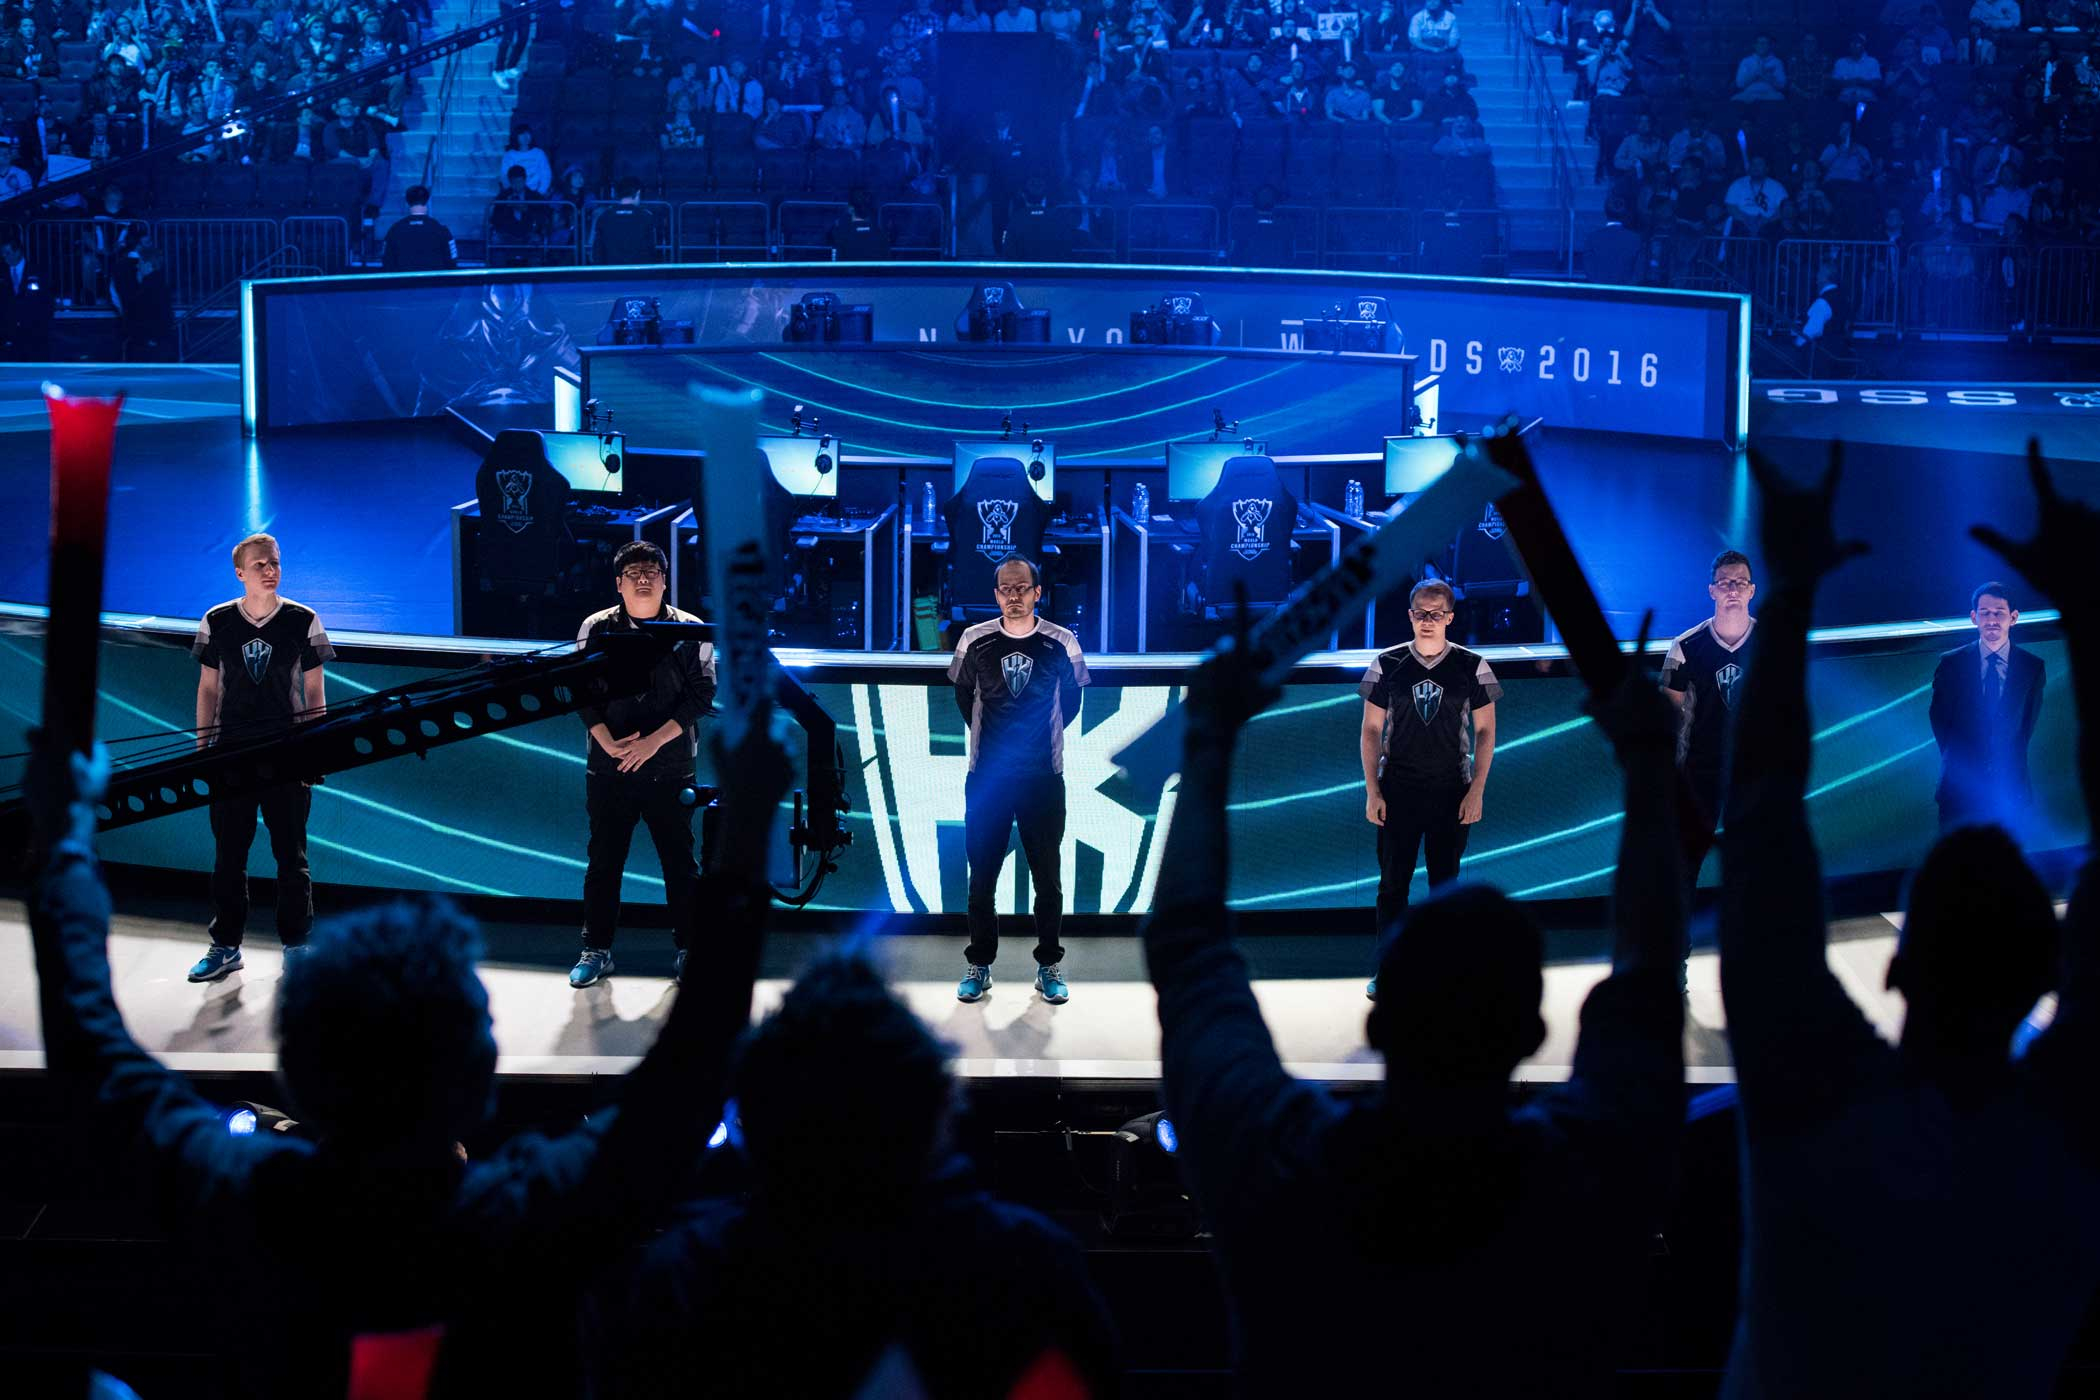 Fans cheer as H2k is introduced before their matchup.